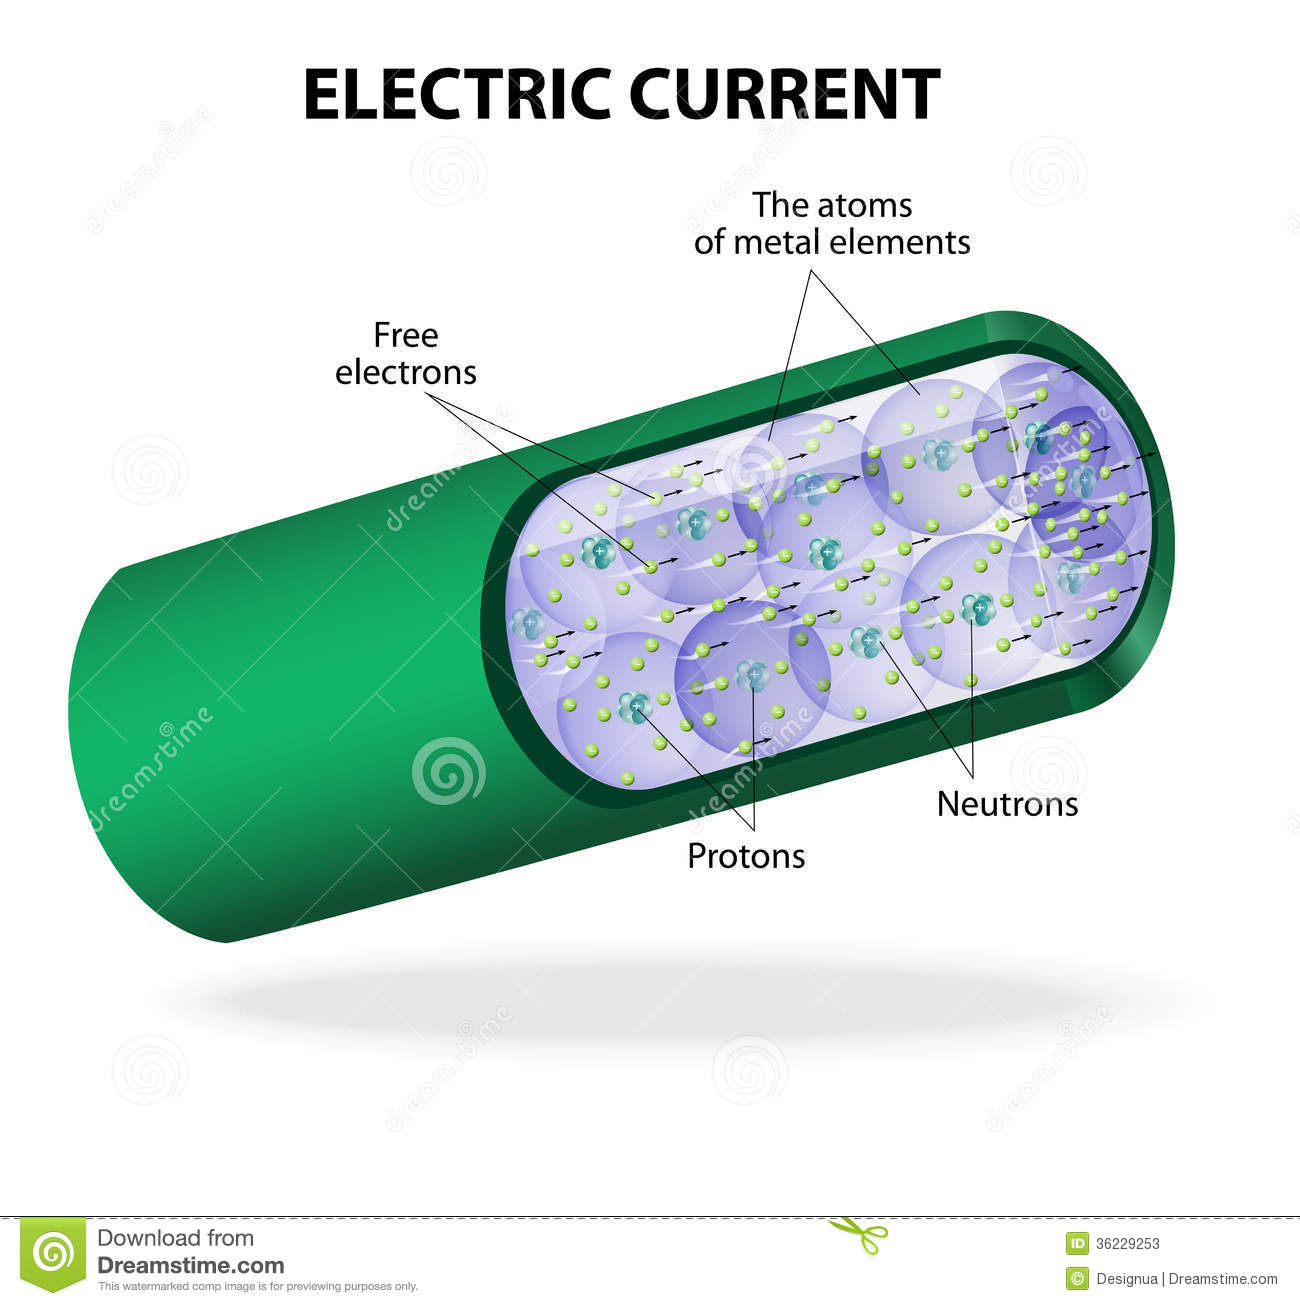 Stock Photos Electric Current Vector Diagram Flow Electrons Circuits Charge Carried Moving Electrons Wire Image36229253 on electrical resistance and conductance